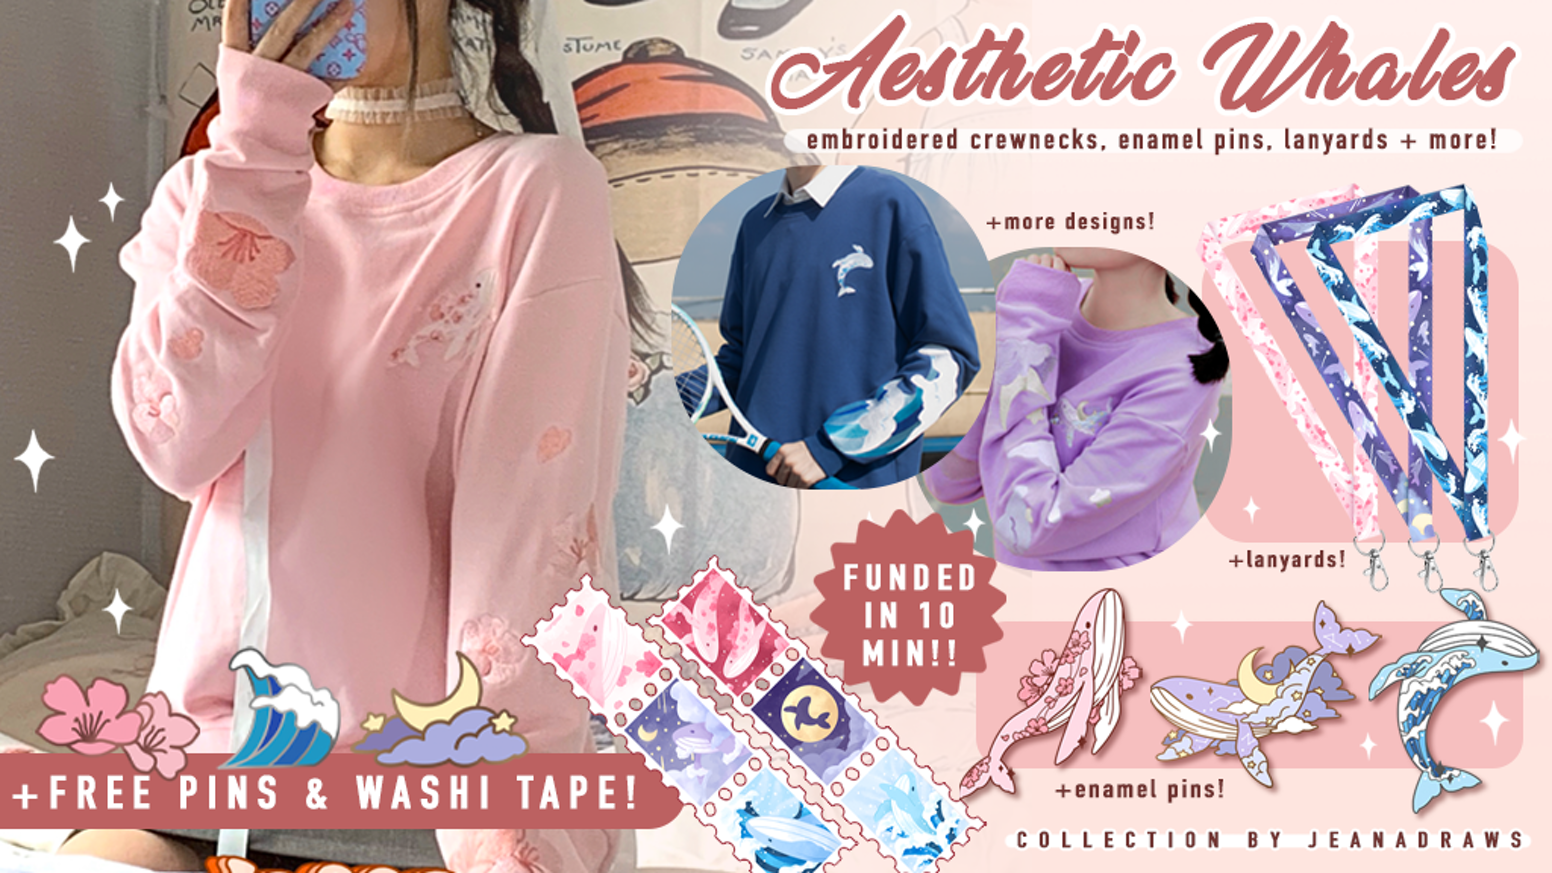 A collection of embroidered crewneck sweatshirts, lanyards, enamel pins, stickers and stamp style washi tape! Missed the Kickstarter? You can still preorder at the discounted KS price below!